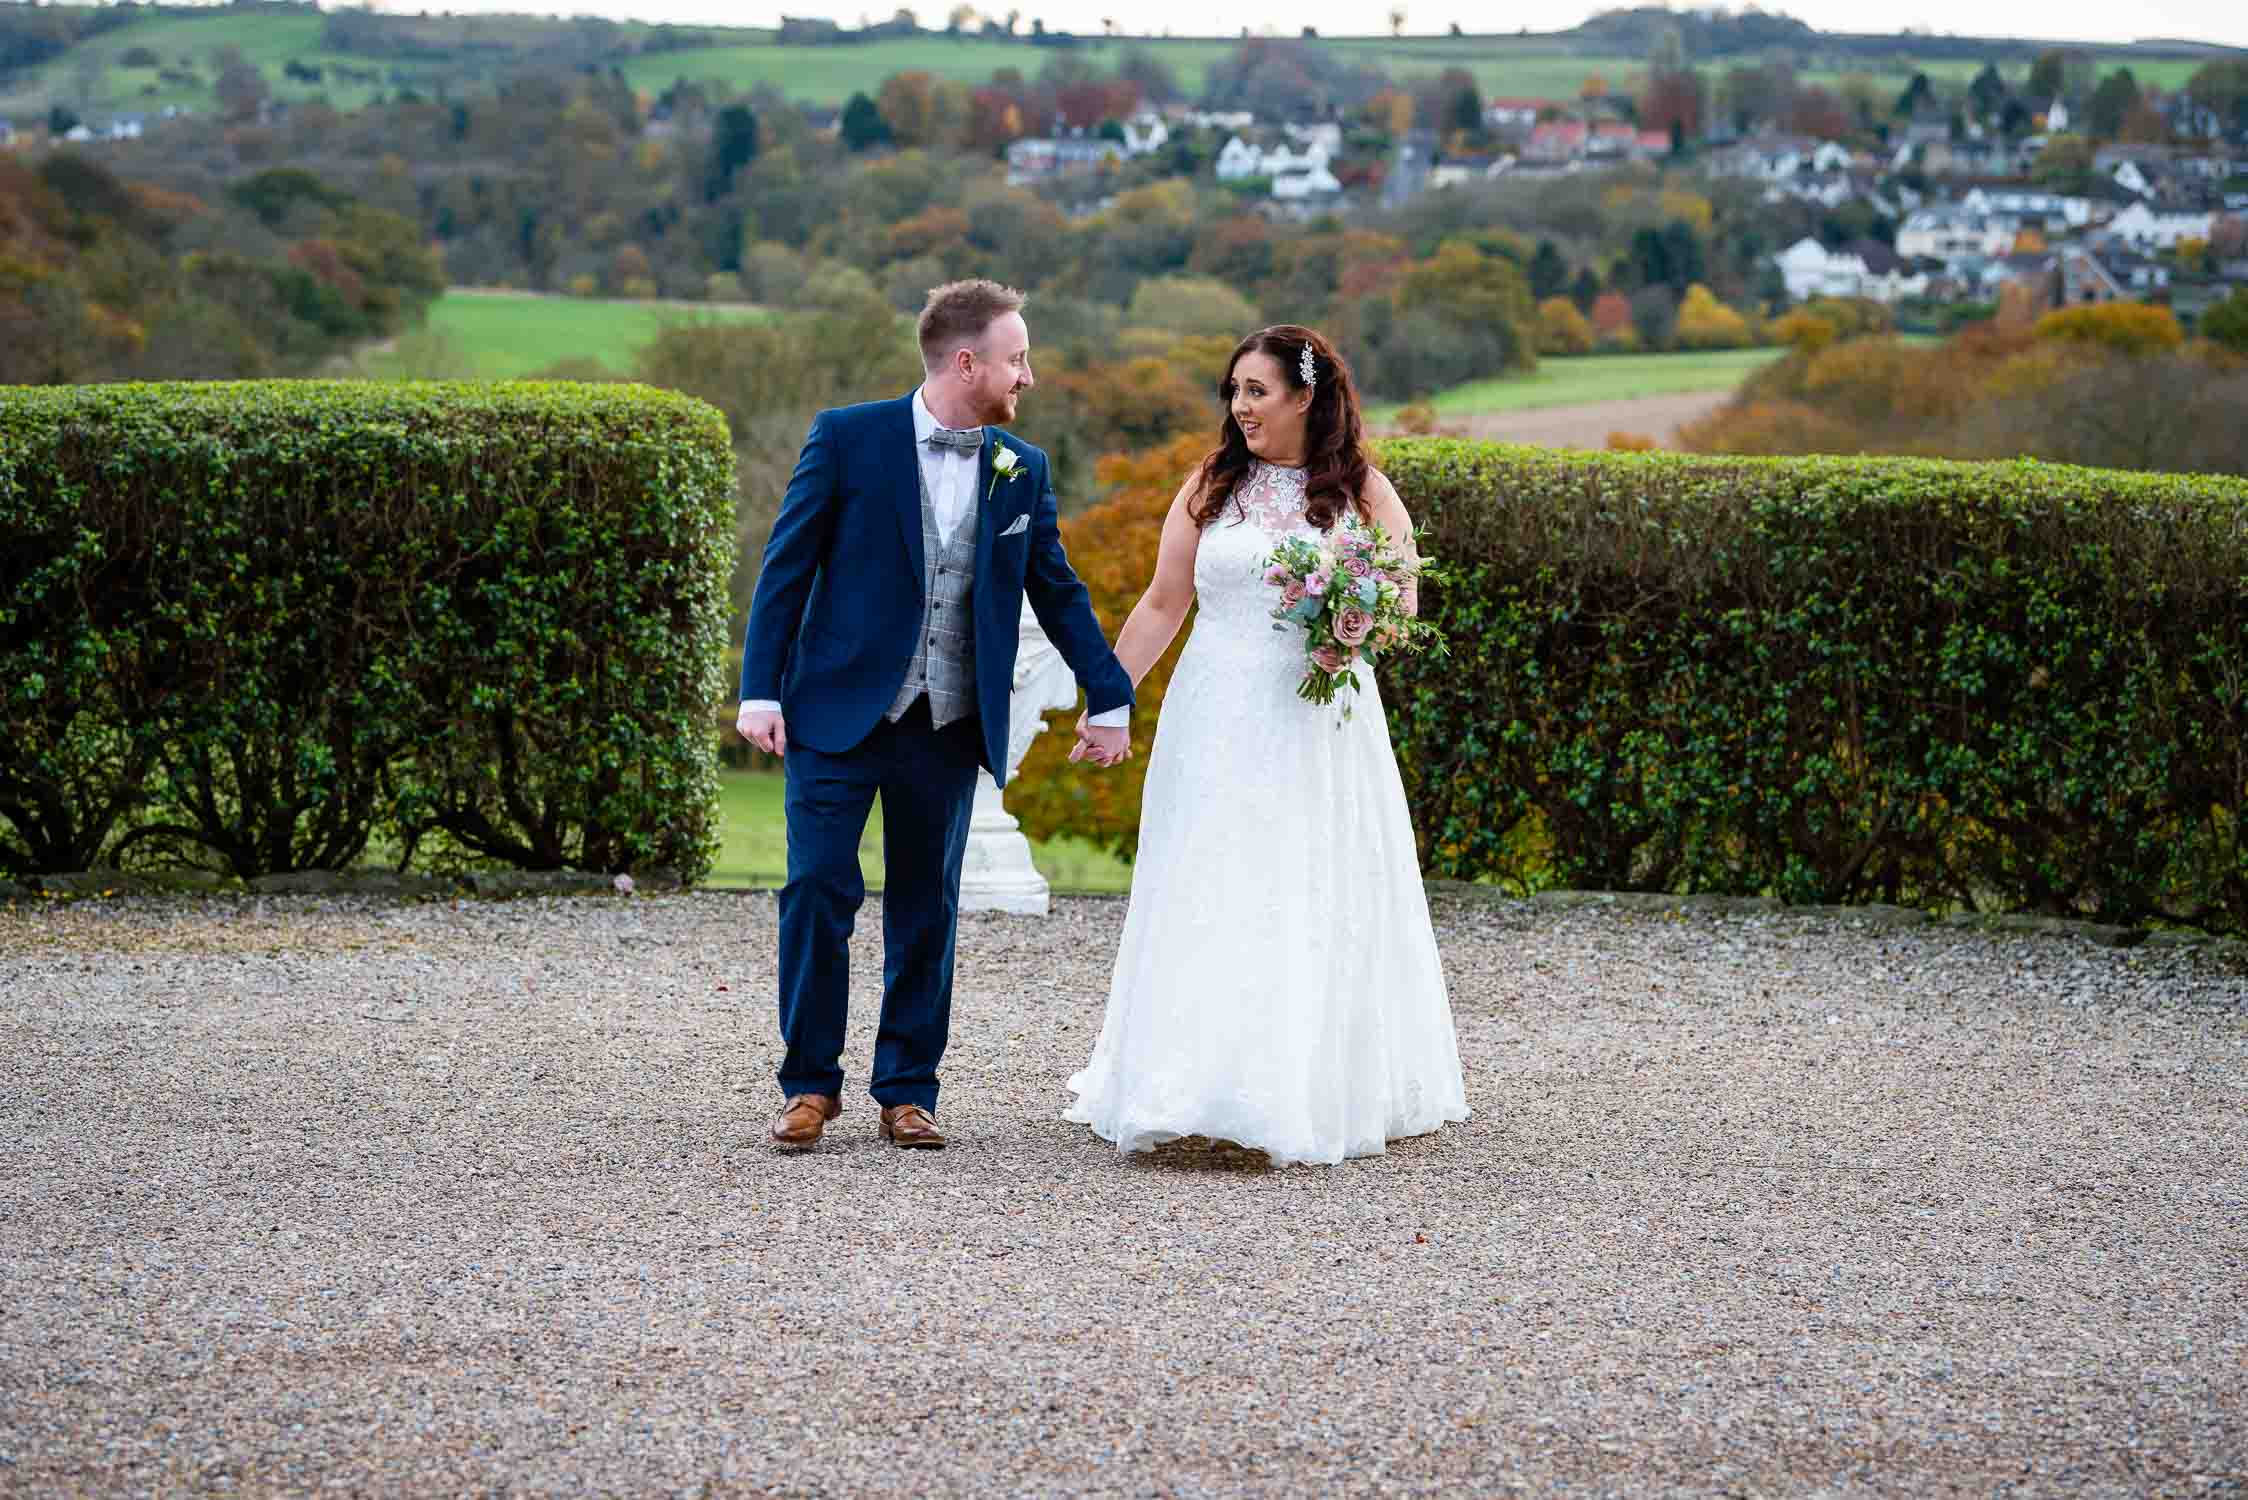 woodhall htel wedding photograph of bride and groom walking together outside